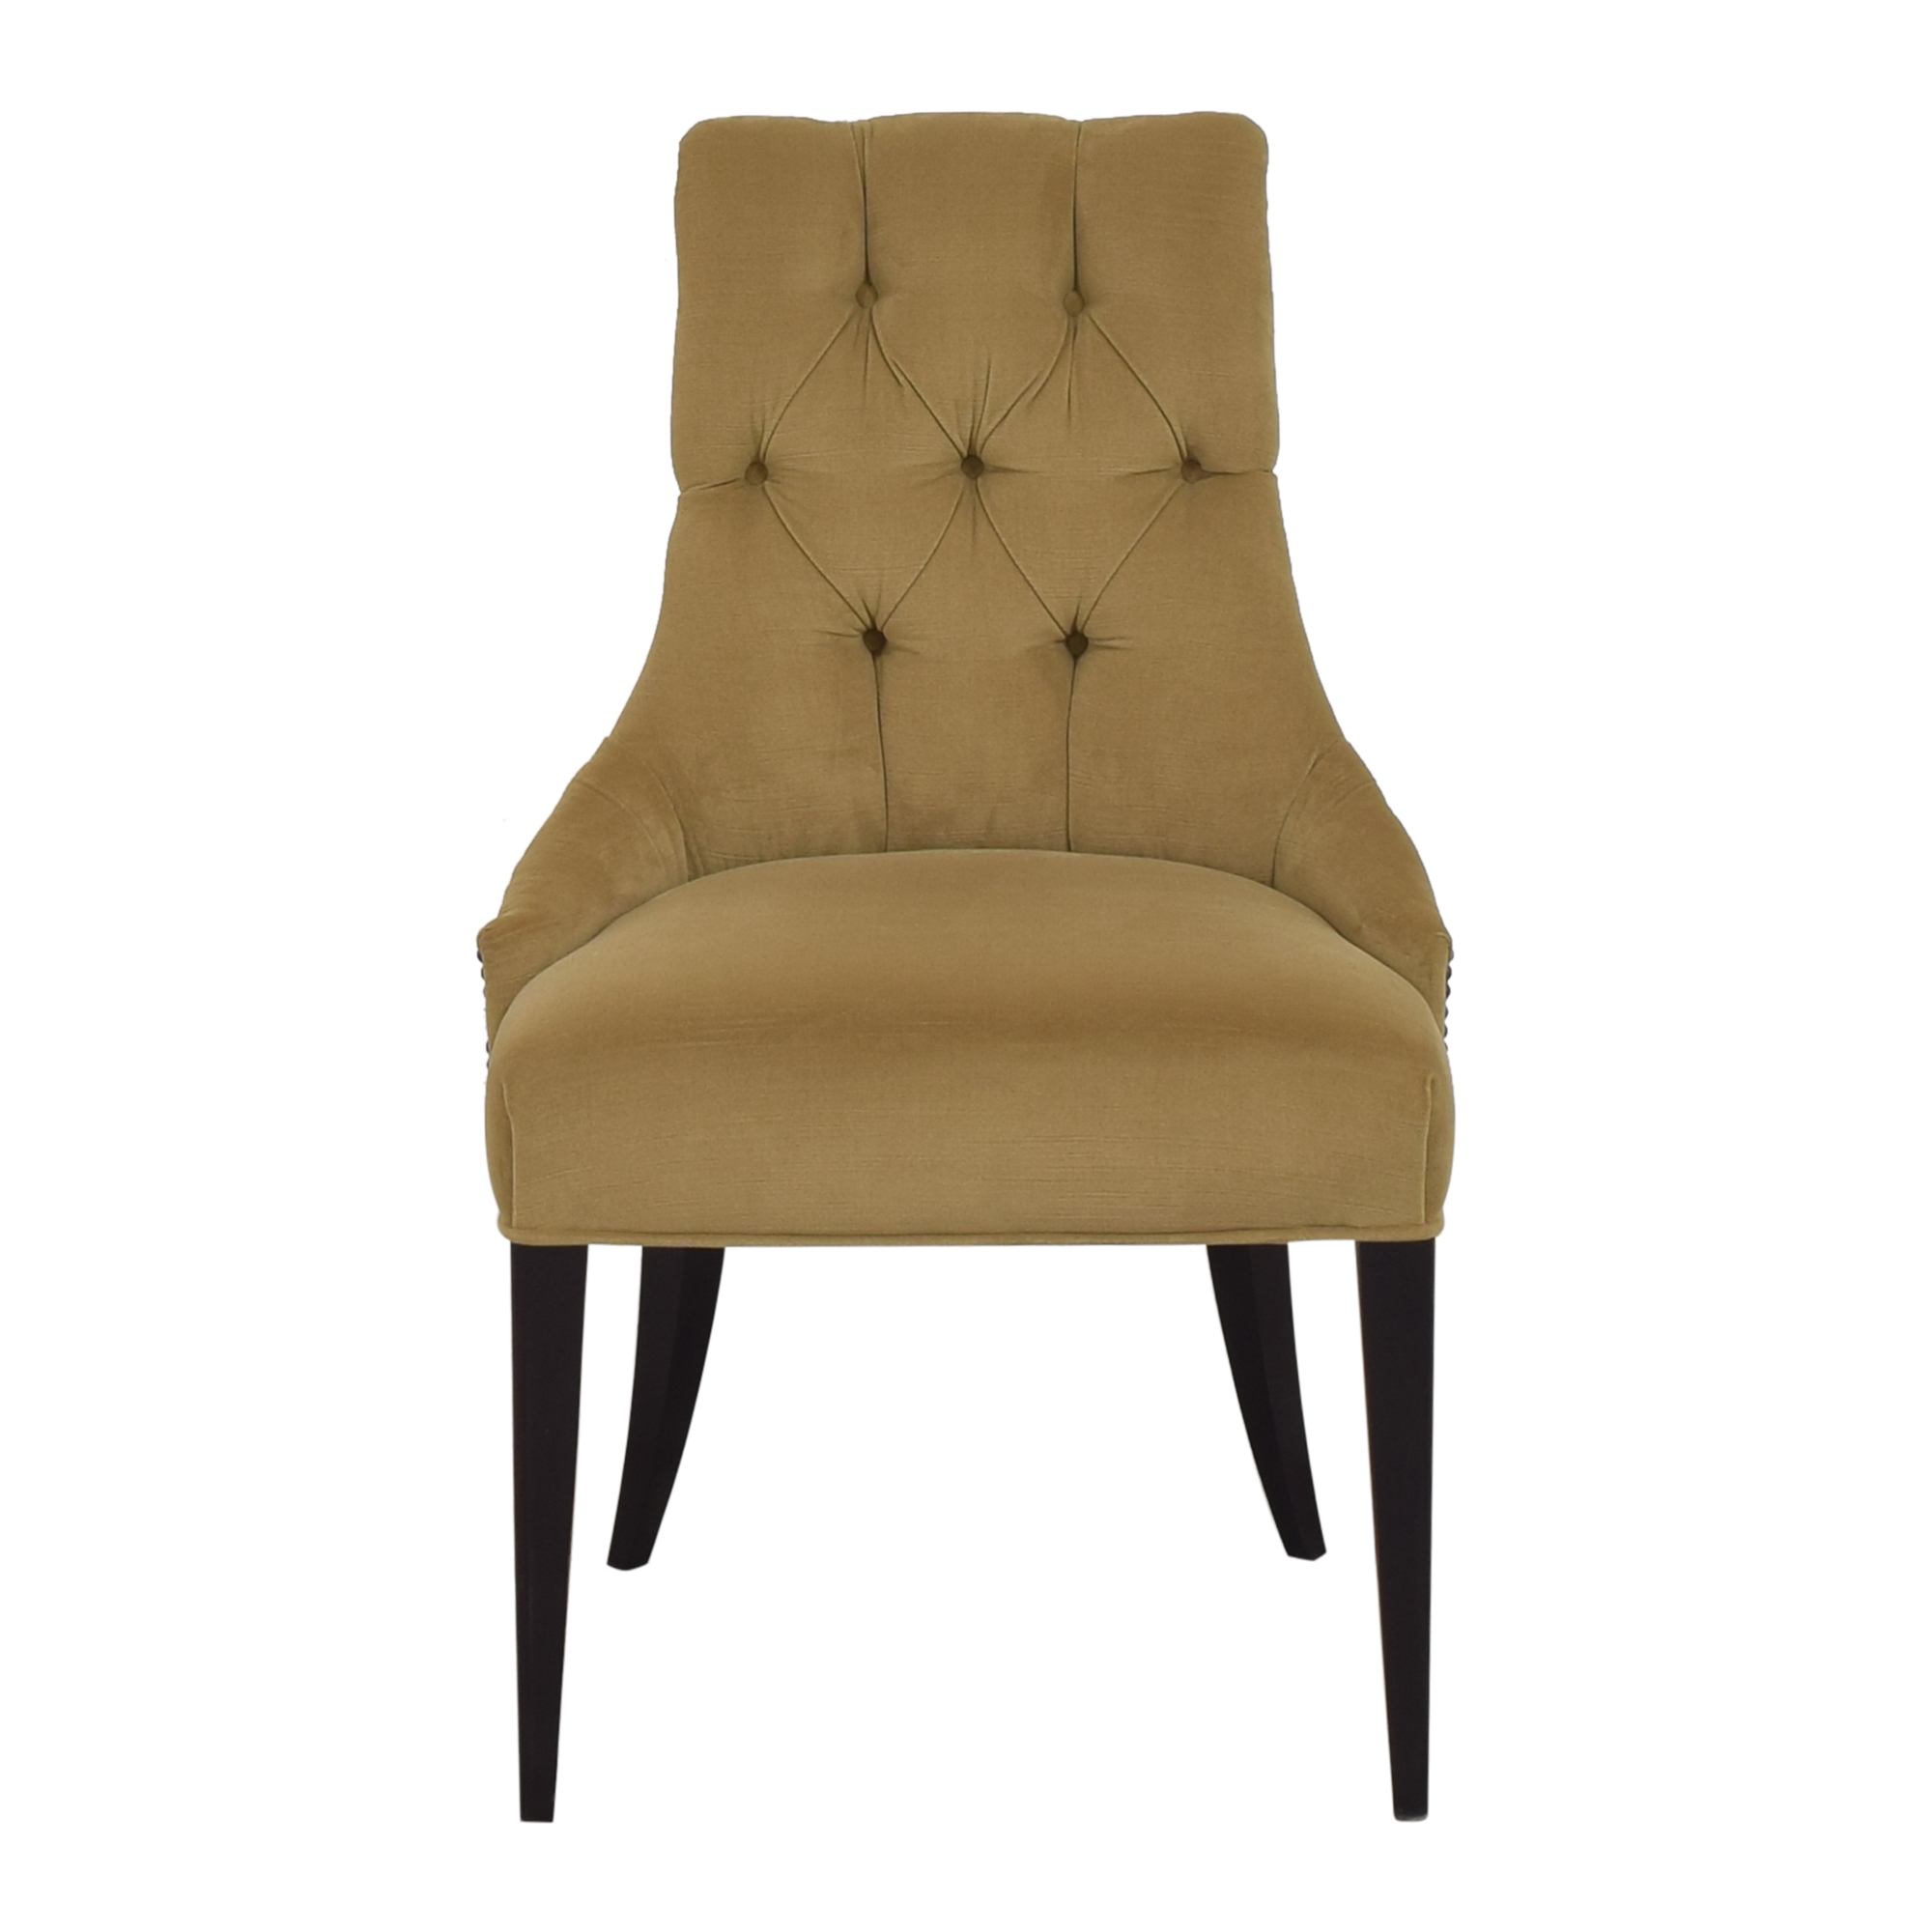 Baker Furniture Baker Furniture Ritz Chair by Thomas Pheasant ma